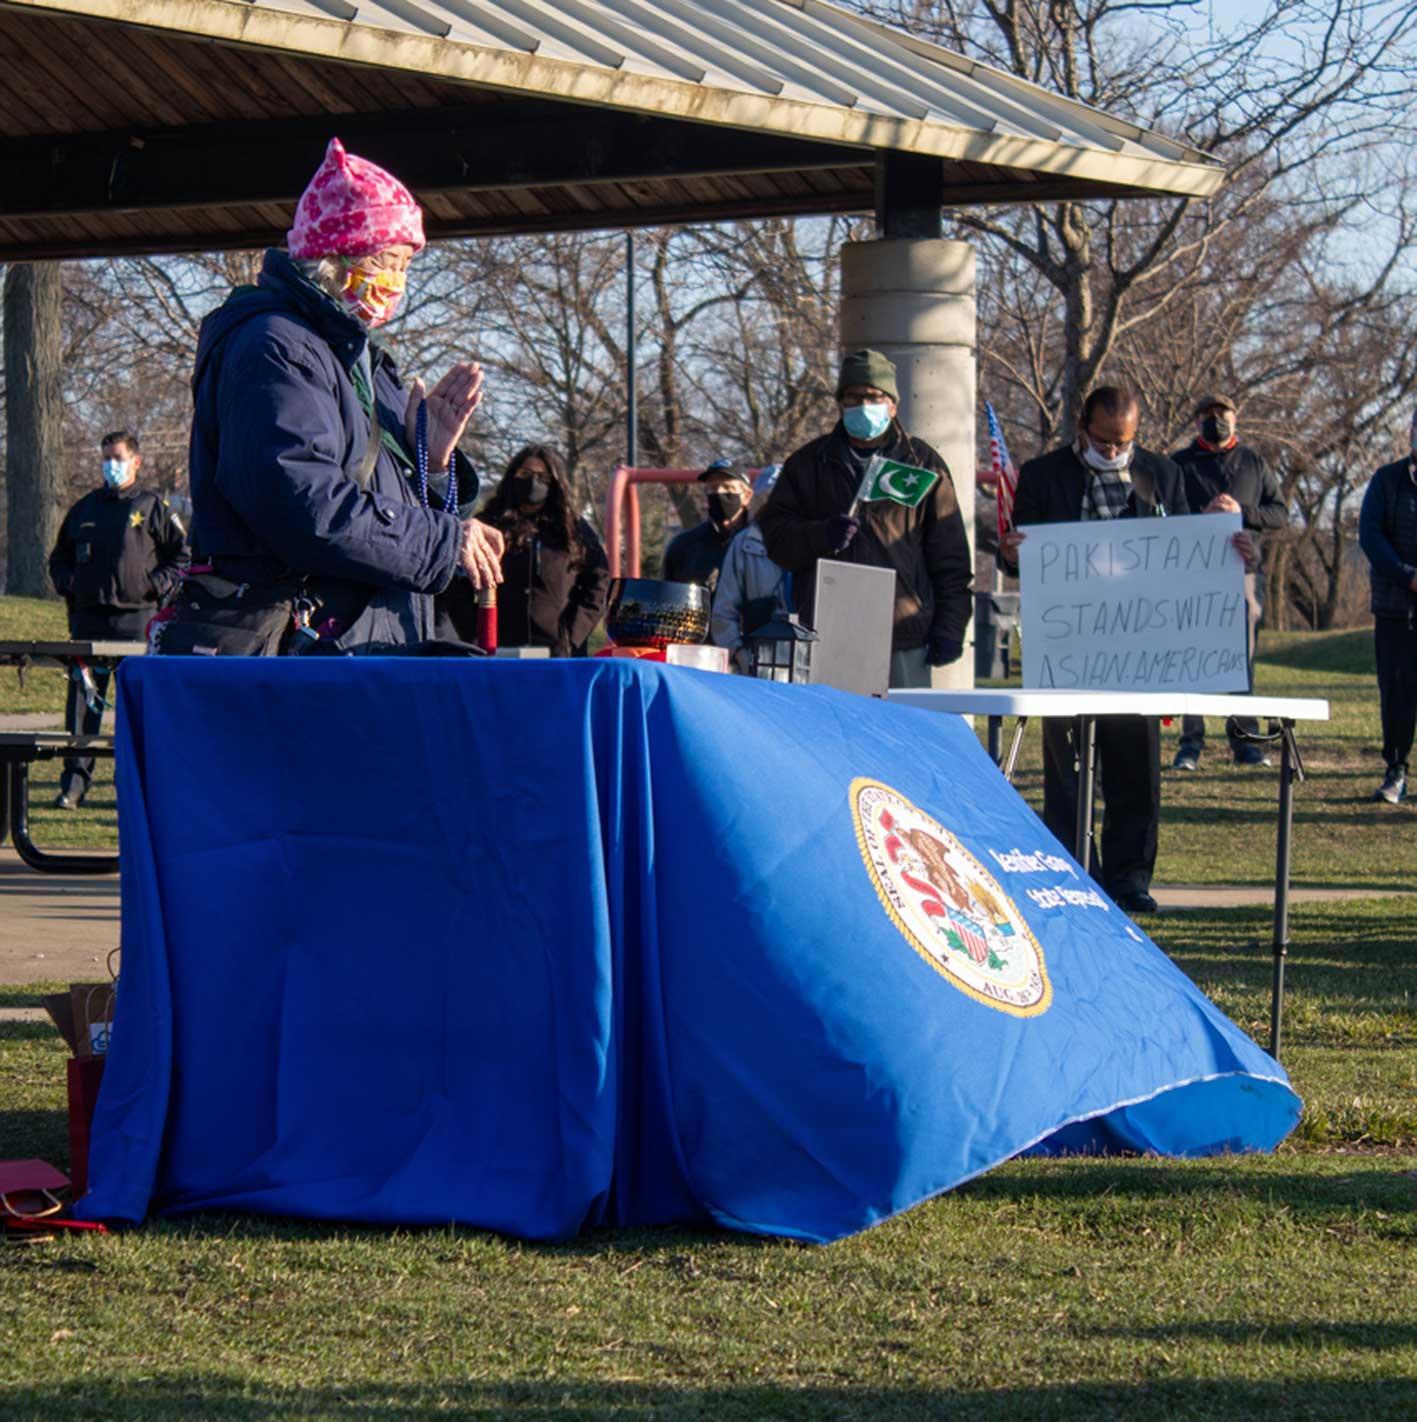 evanstonroundtable.com: Vigil in Solidarity with Asian Americans at Lovelace Park Attracts 150